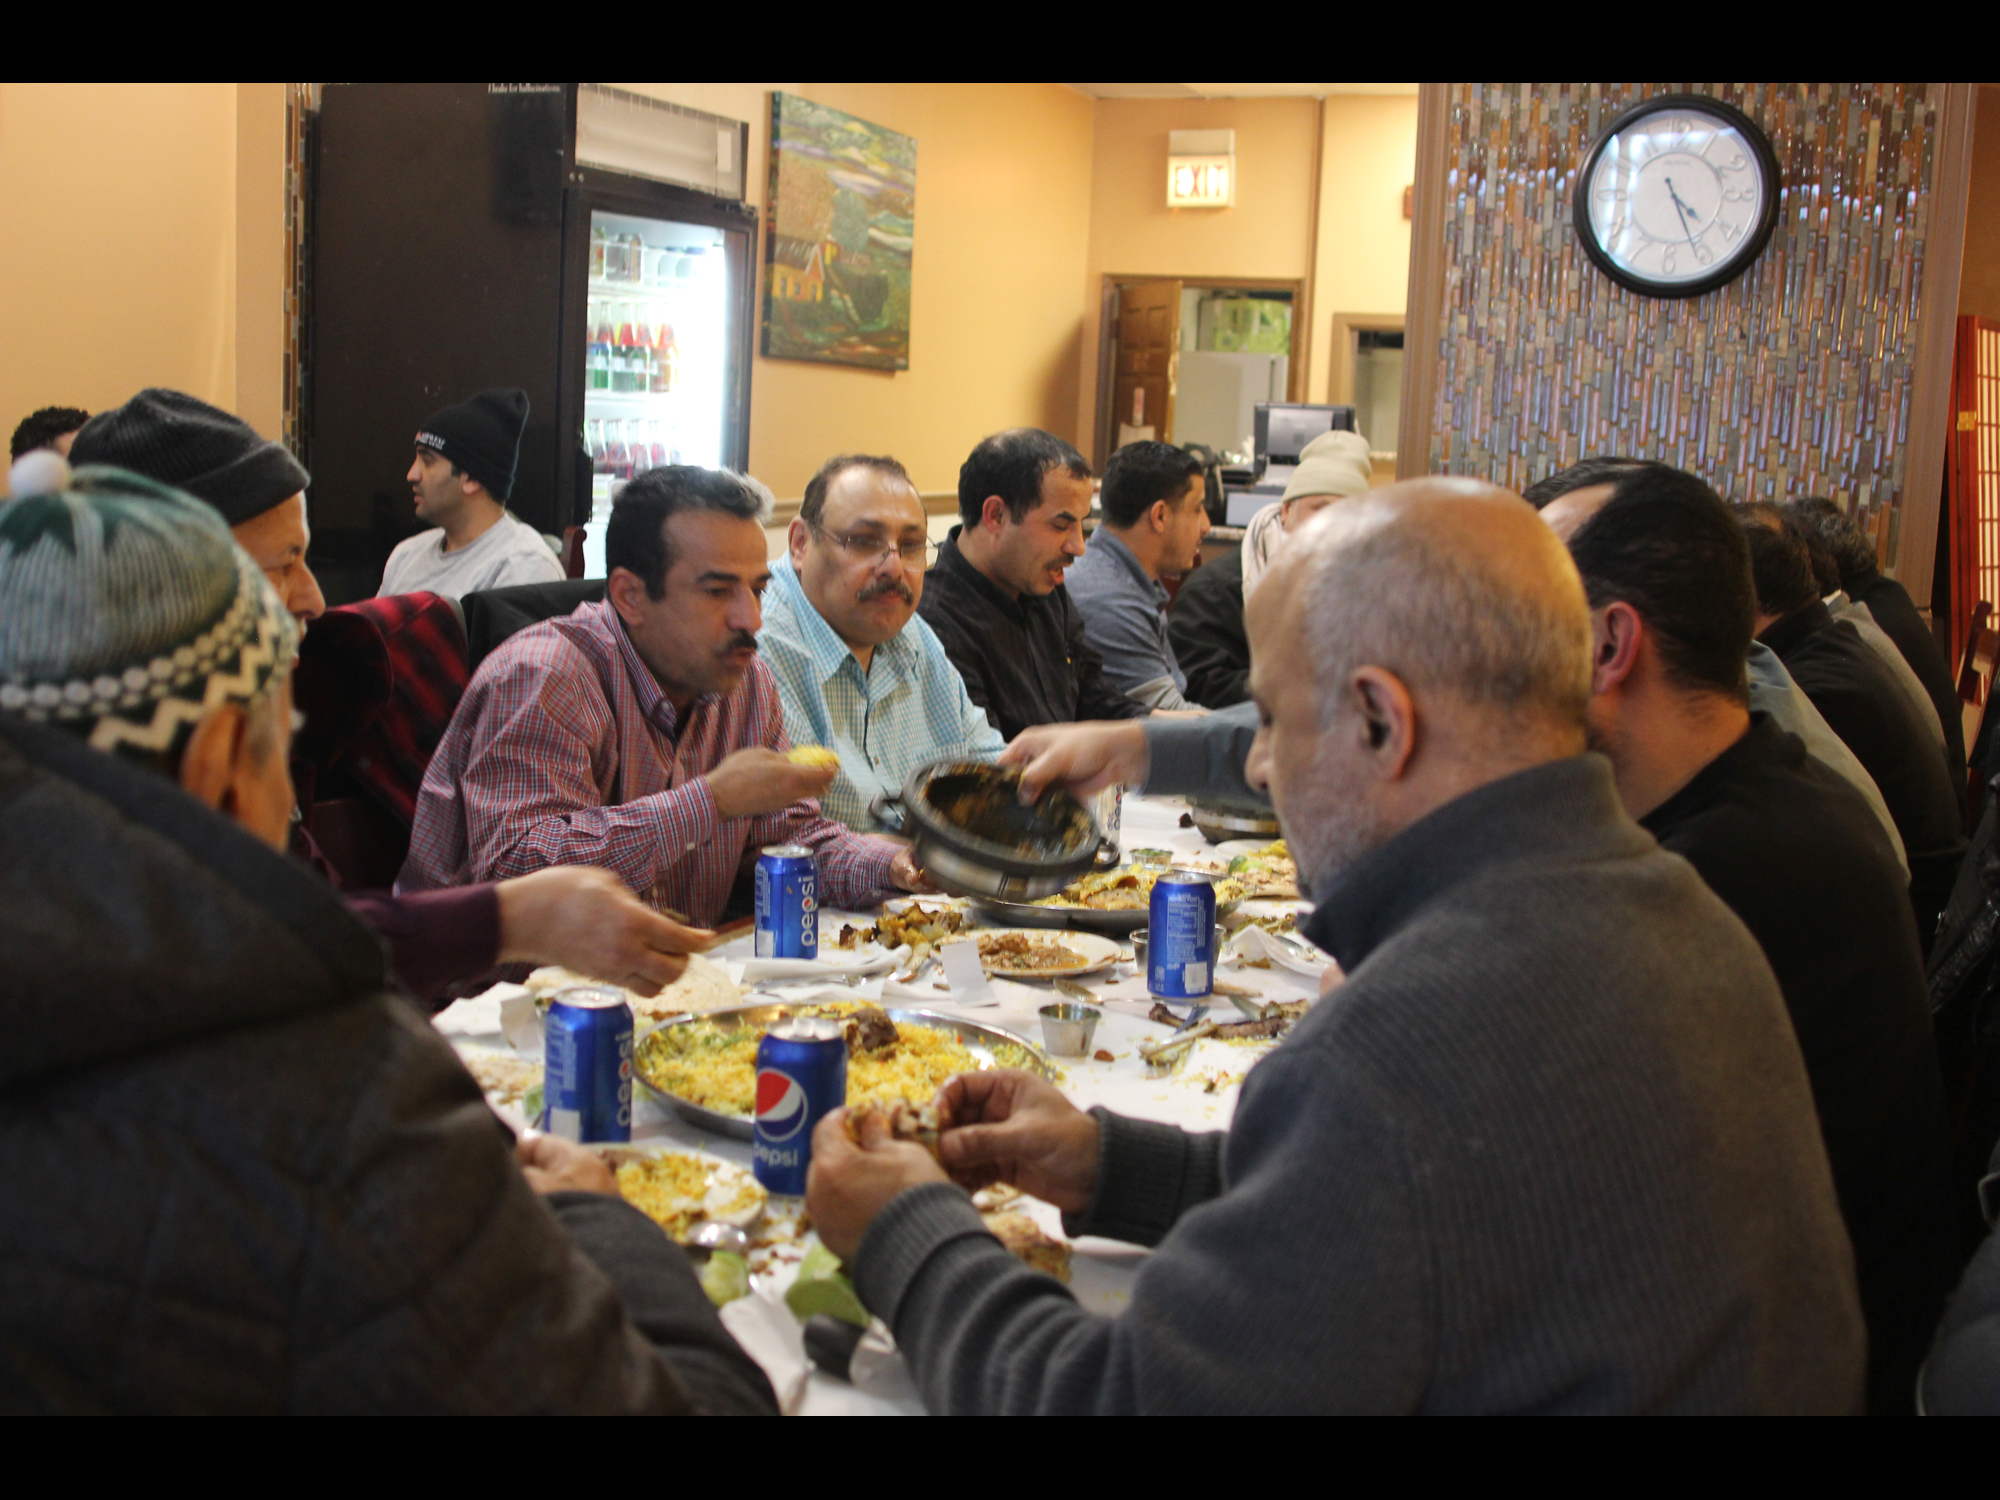 A YEMENI WELCOME AT MANDI NOOR ON LAWRENCE